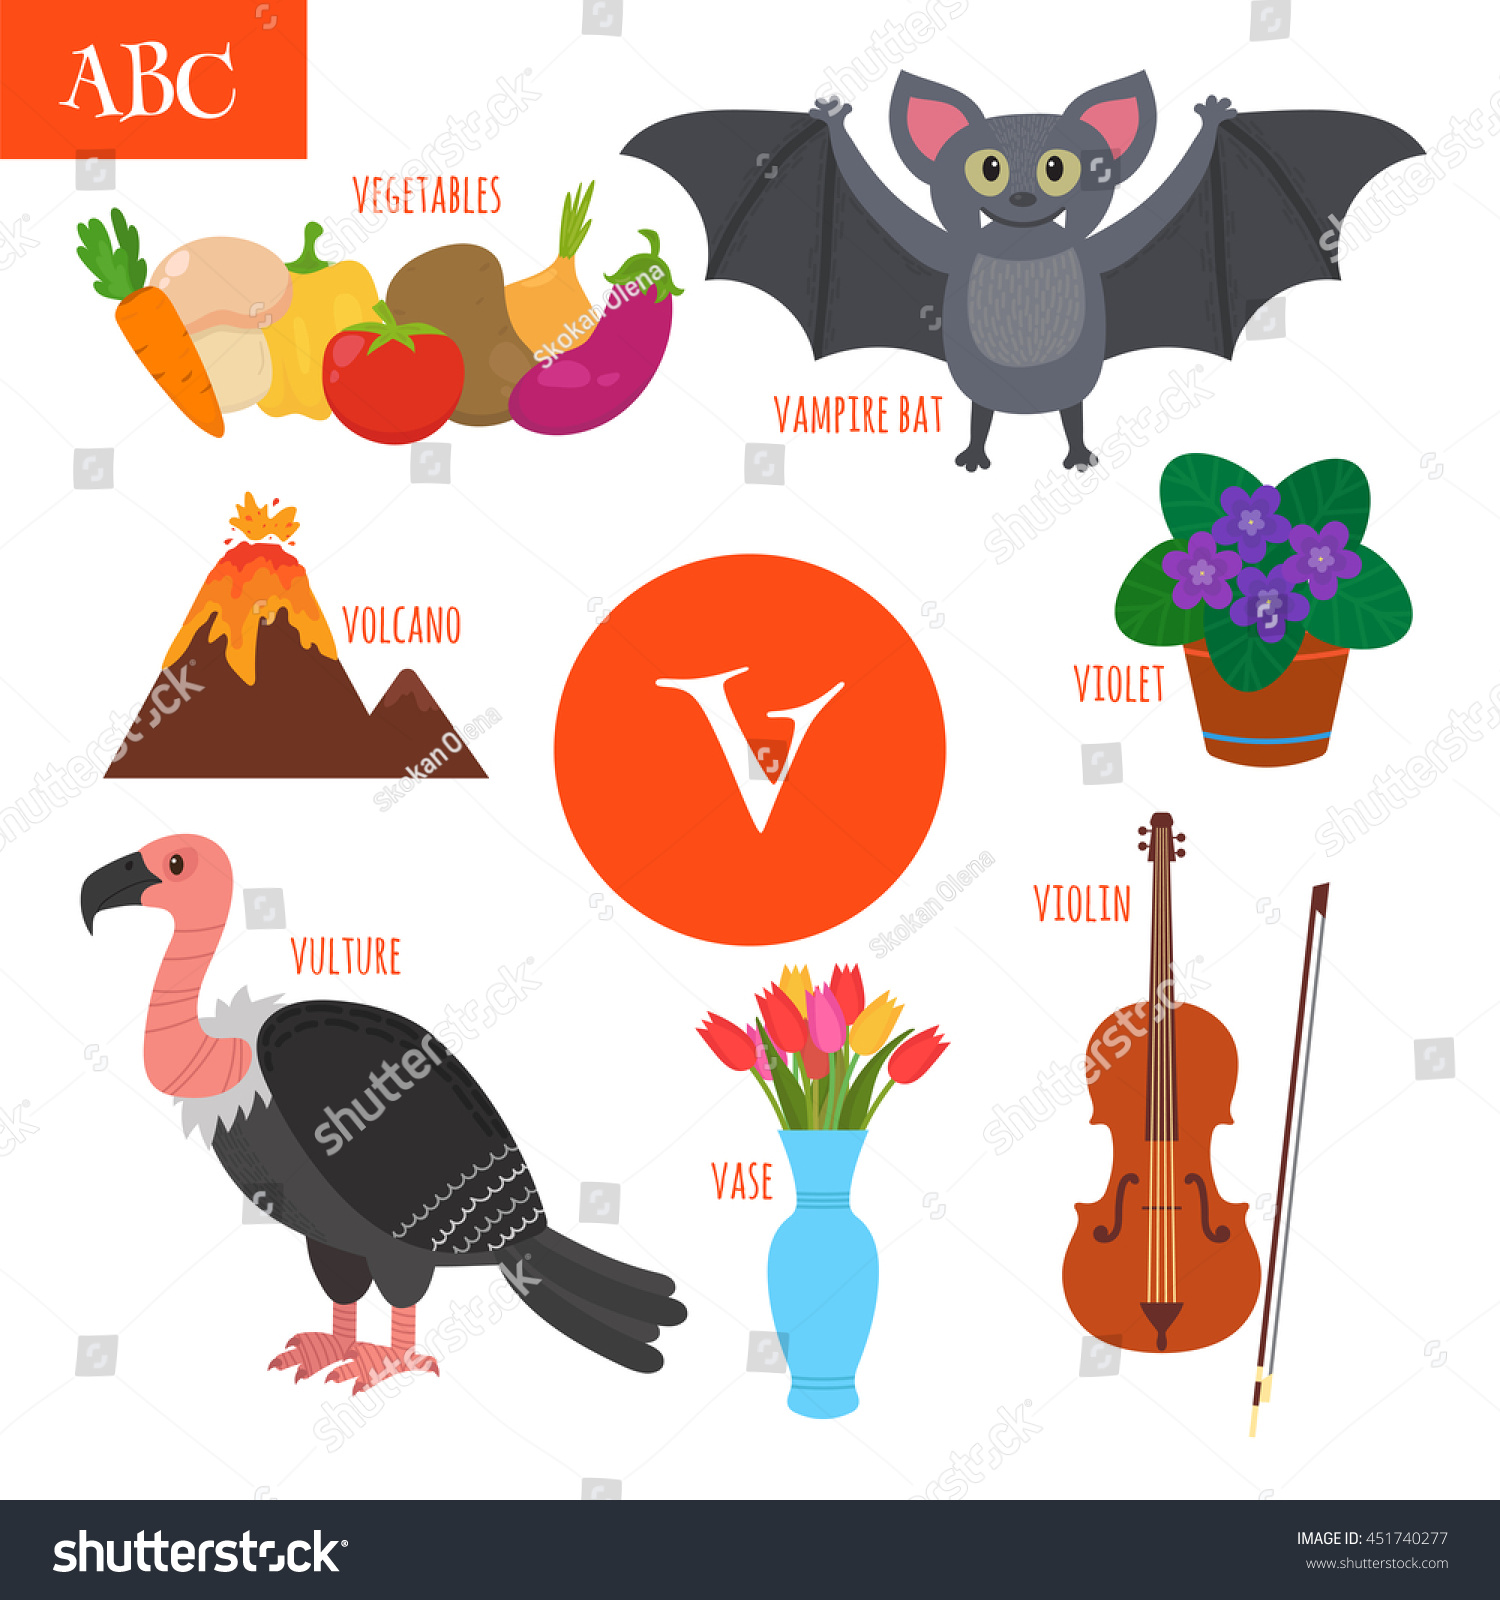 What Starts With The Letter V